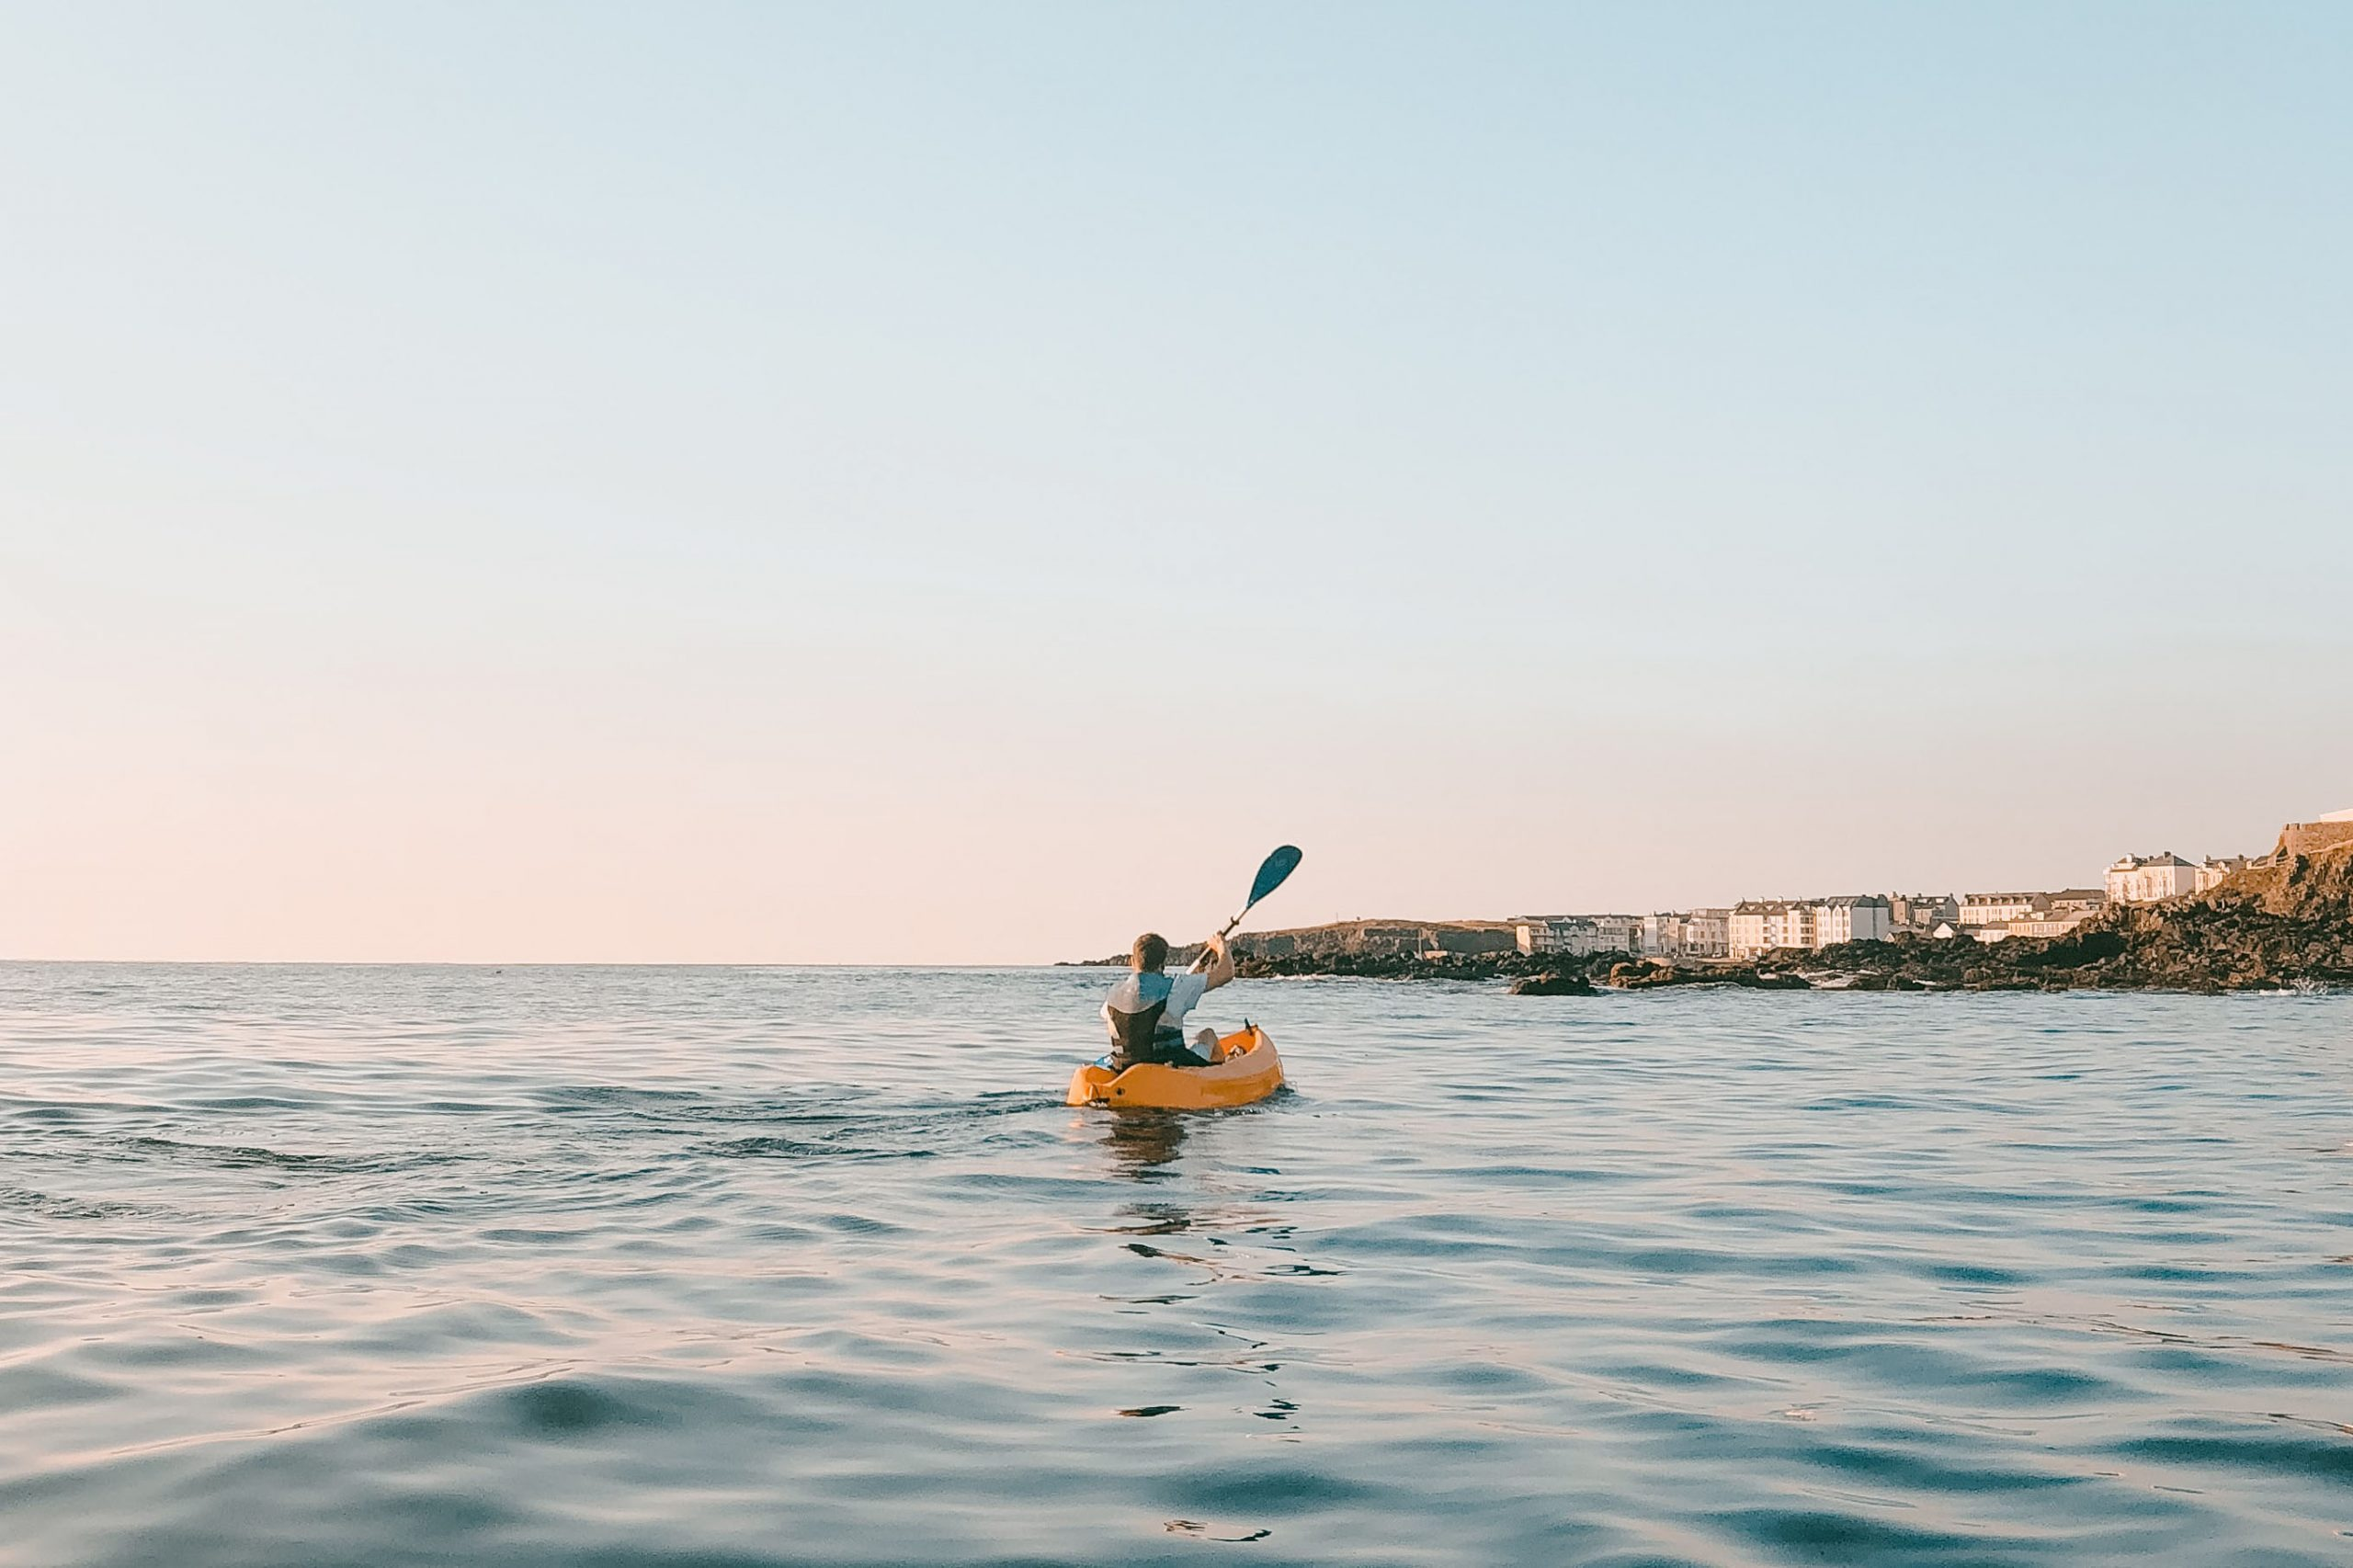 How long does it take to kayak a mile - 3